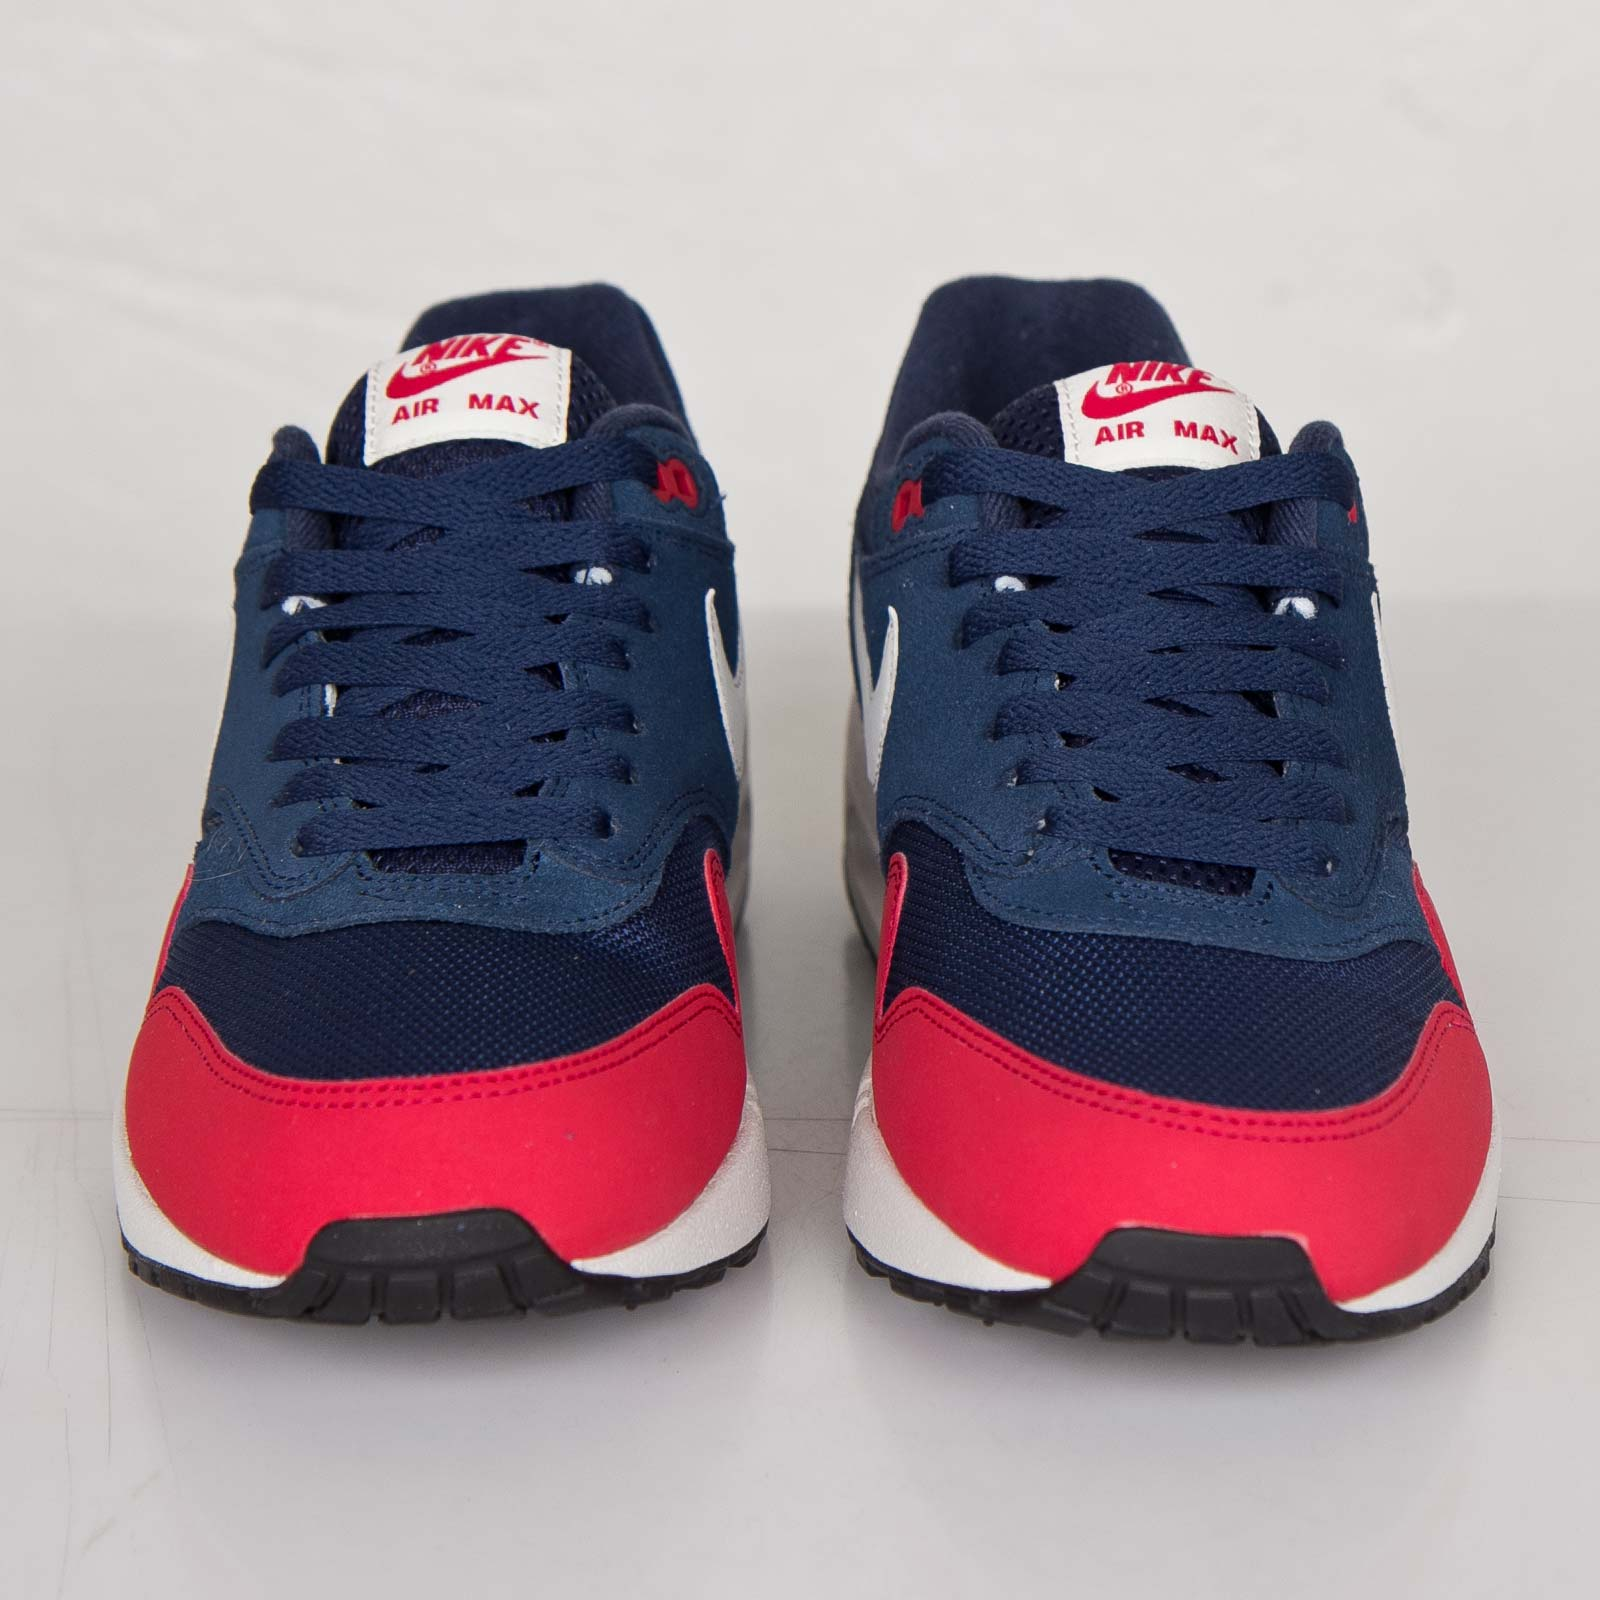 check out 25d65 3ed16 Nike Air Max 1 Essential - 537383-400 - Sneakersnstuff   sneakers    streetwear online since 1999